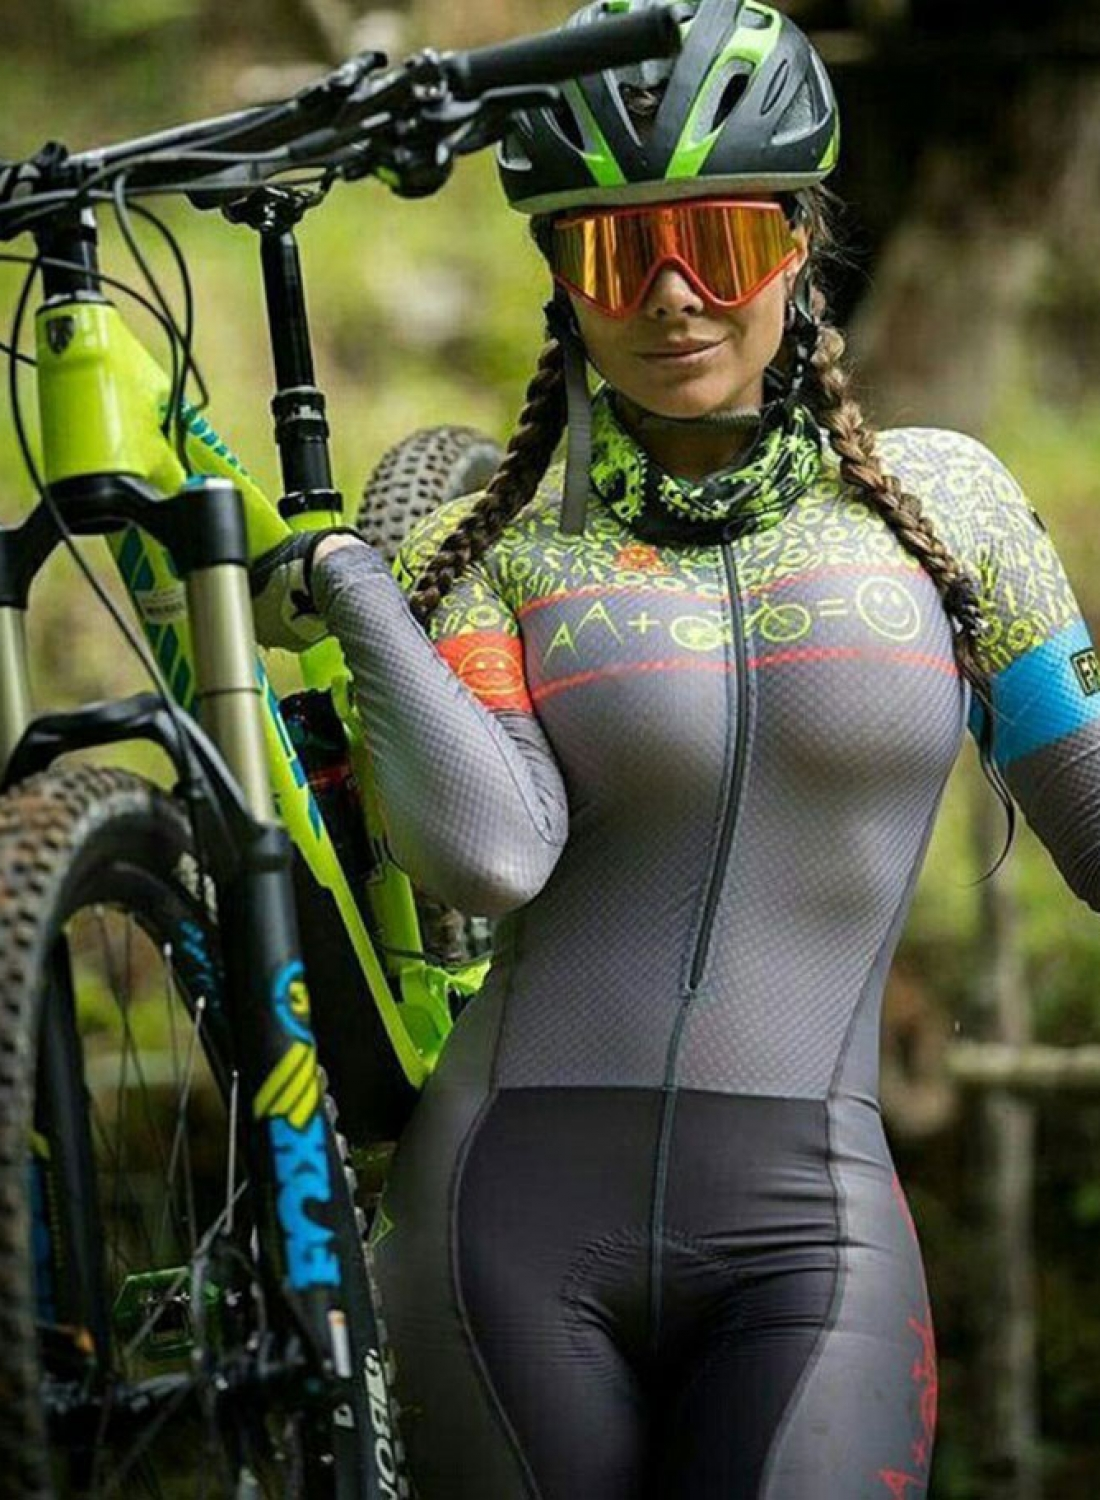 HOT MOUNTAIN BIKE GIRLS